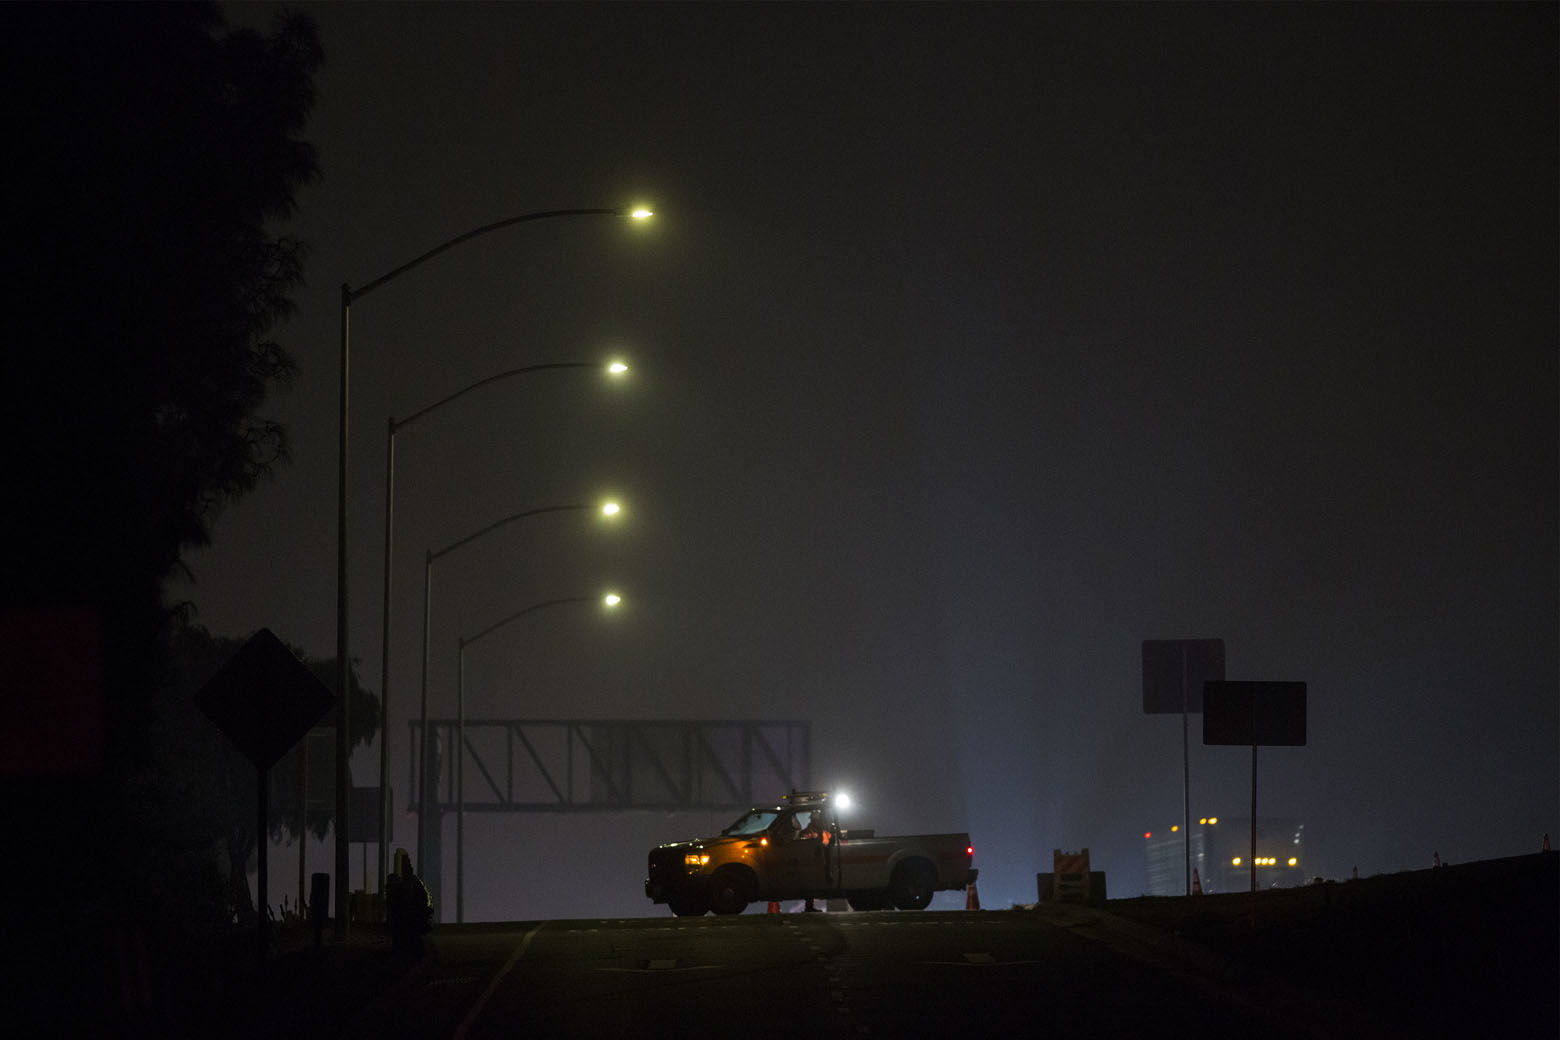 THOUSAND OAKS, CA - NOVEMBER 08: A truck is parked on the freeway off-ramp from the 101, near the Borderline Bar and Grill, the scene of a mass shooting, is closed on November 8, 2018 in Thousand Oaks, California. At least twelve people have died, including a Ventura County Sheriffs Department sergeant, plus the gunman.  (Photo by David McNew/Getty Images)